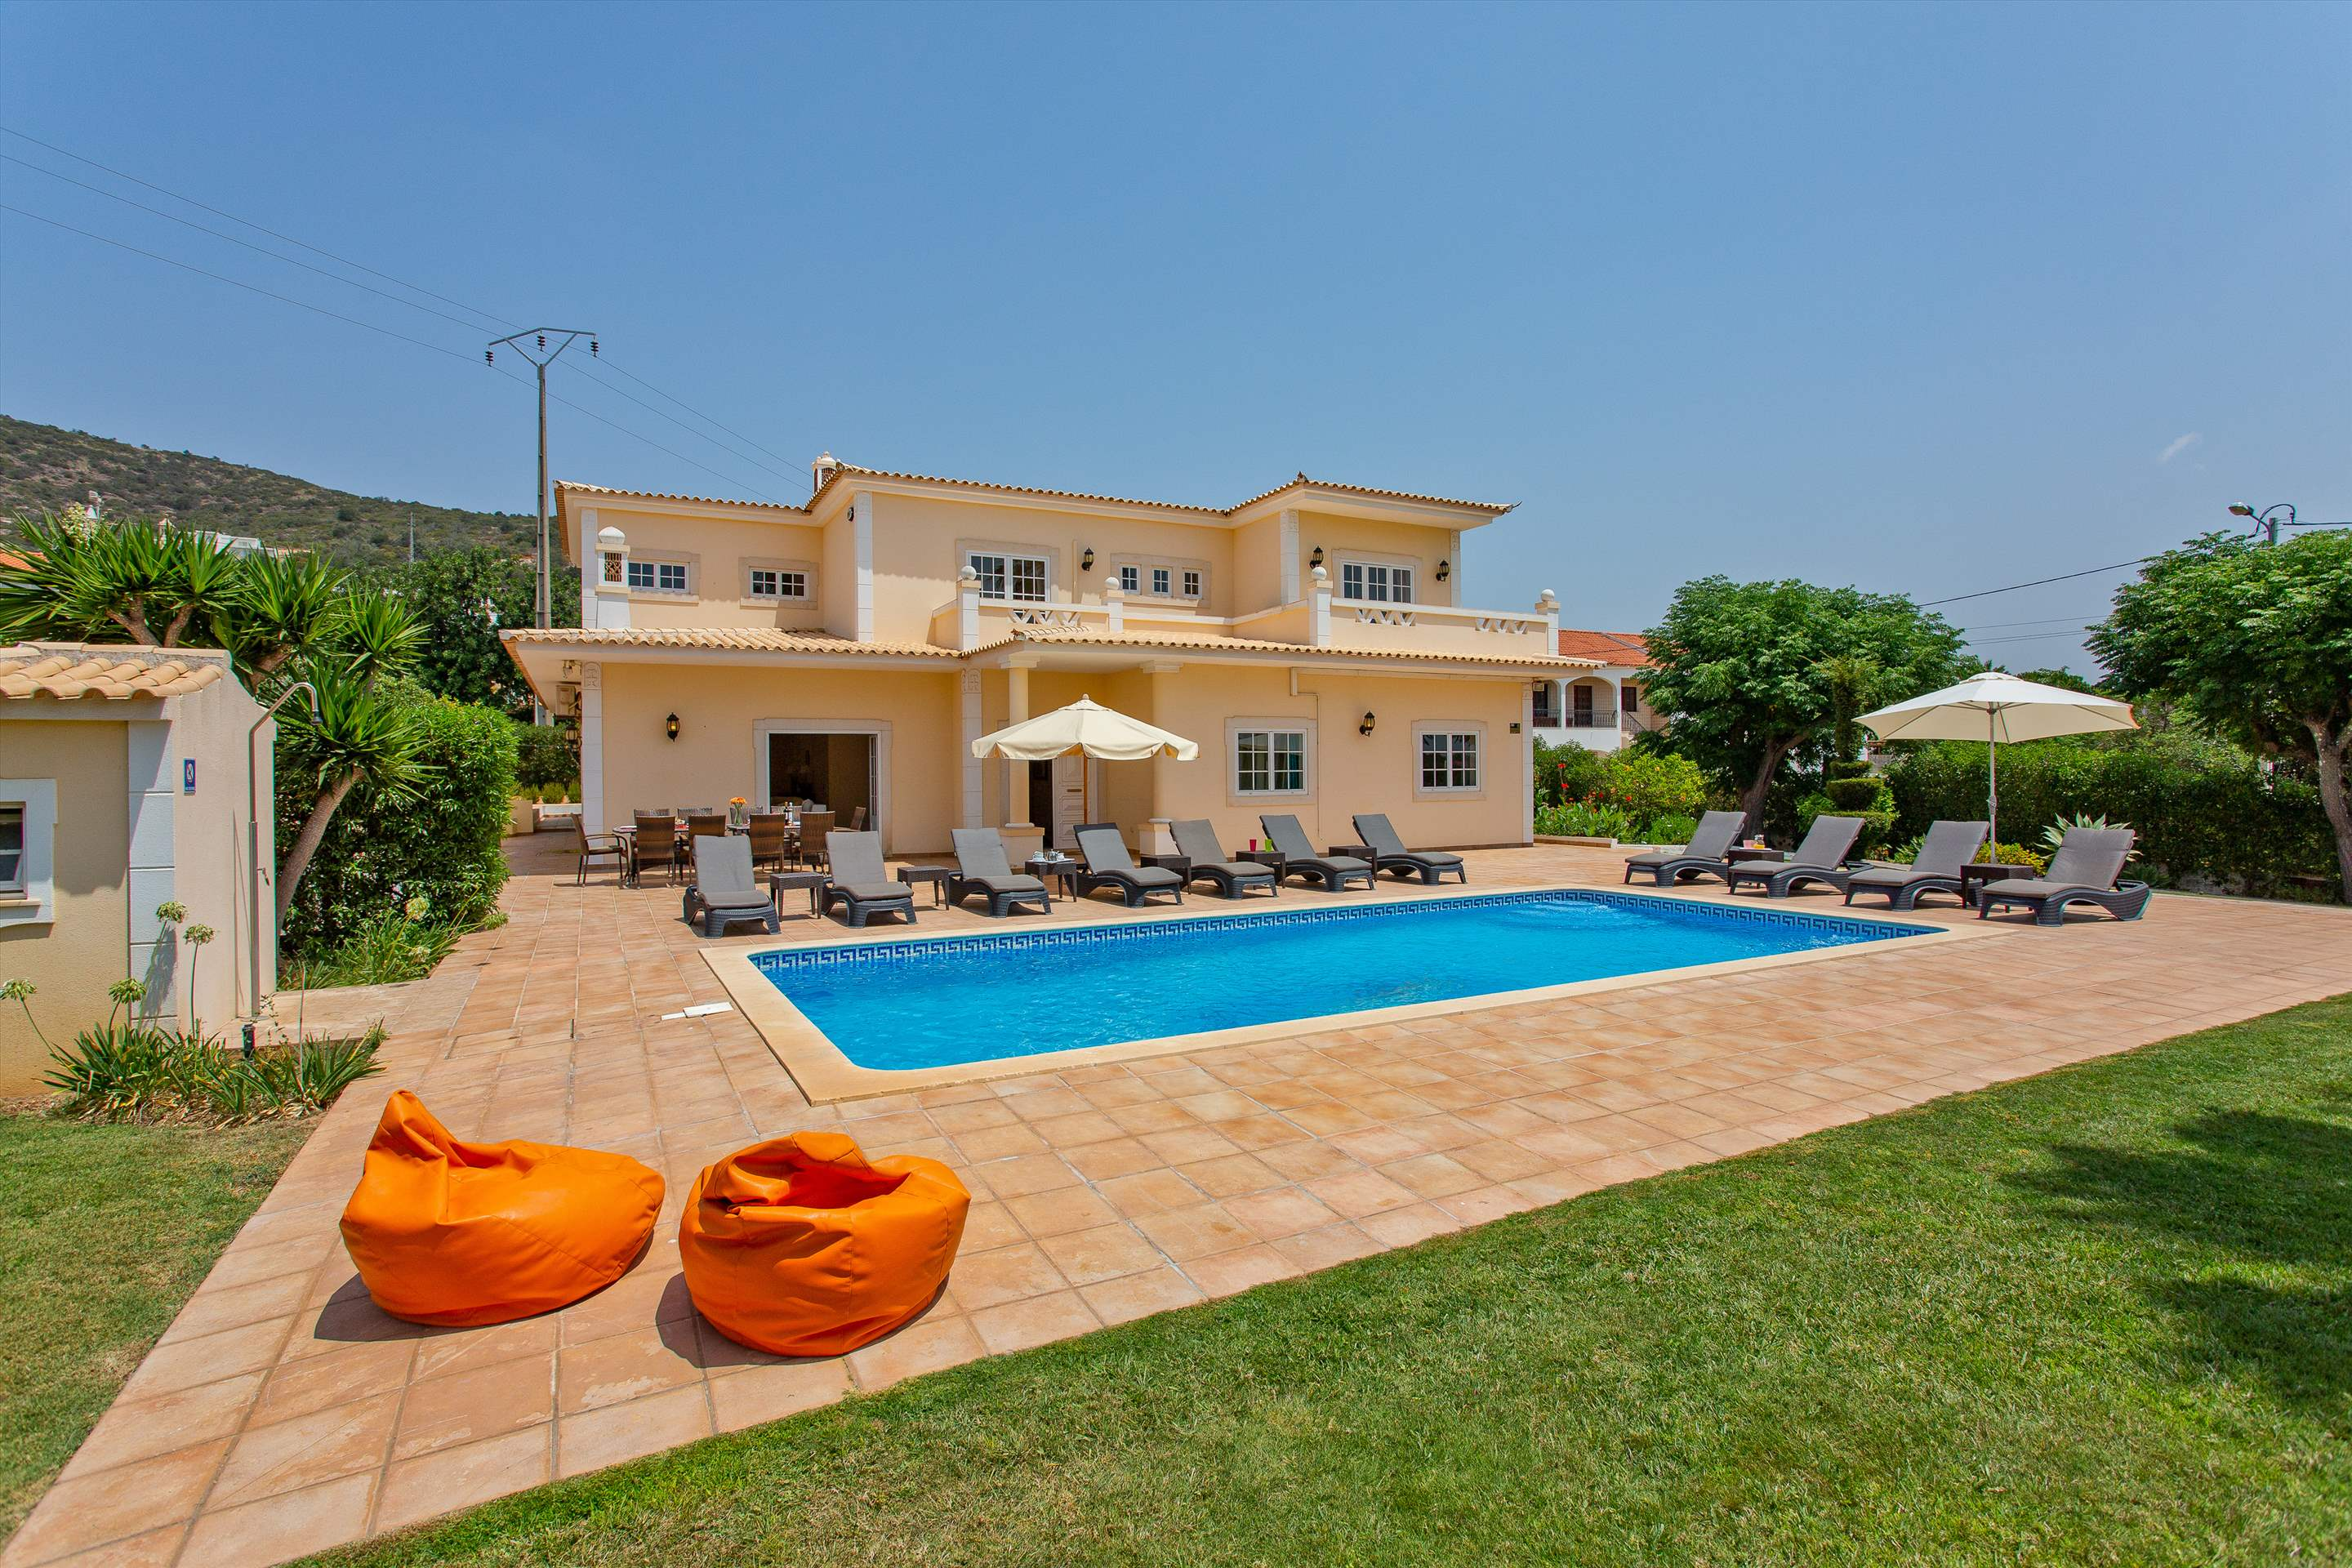 Quinta do Bruno, Four Bedroom Rate, 4 bedroom villa in Vilamoura Area, Algarve Photo #1